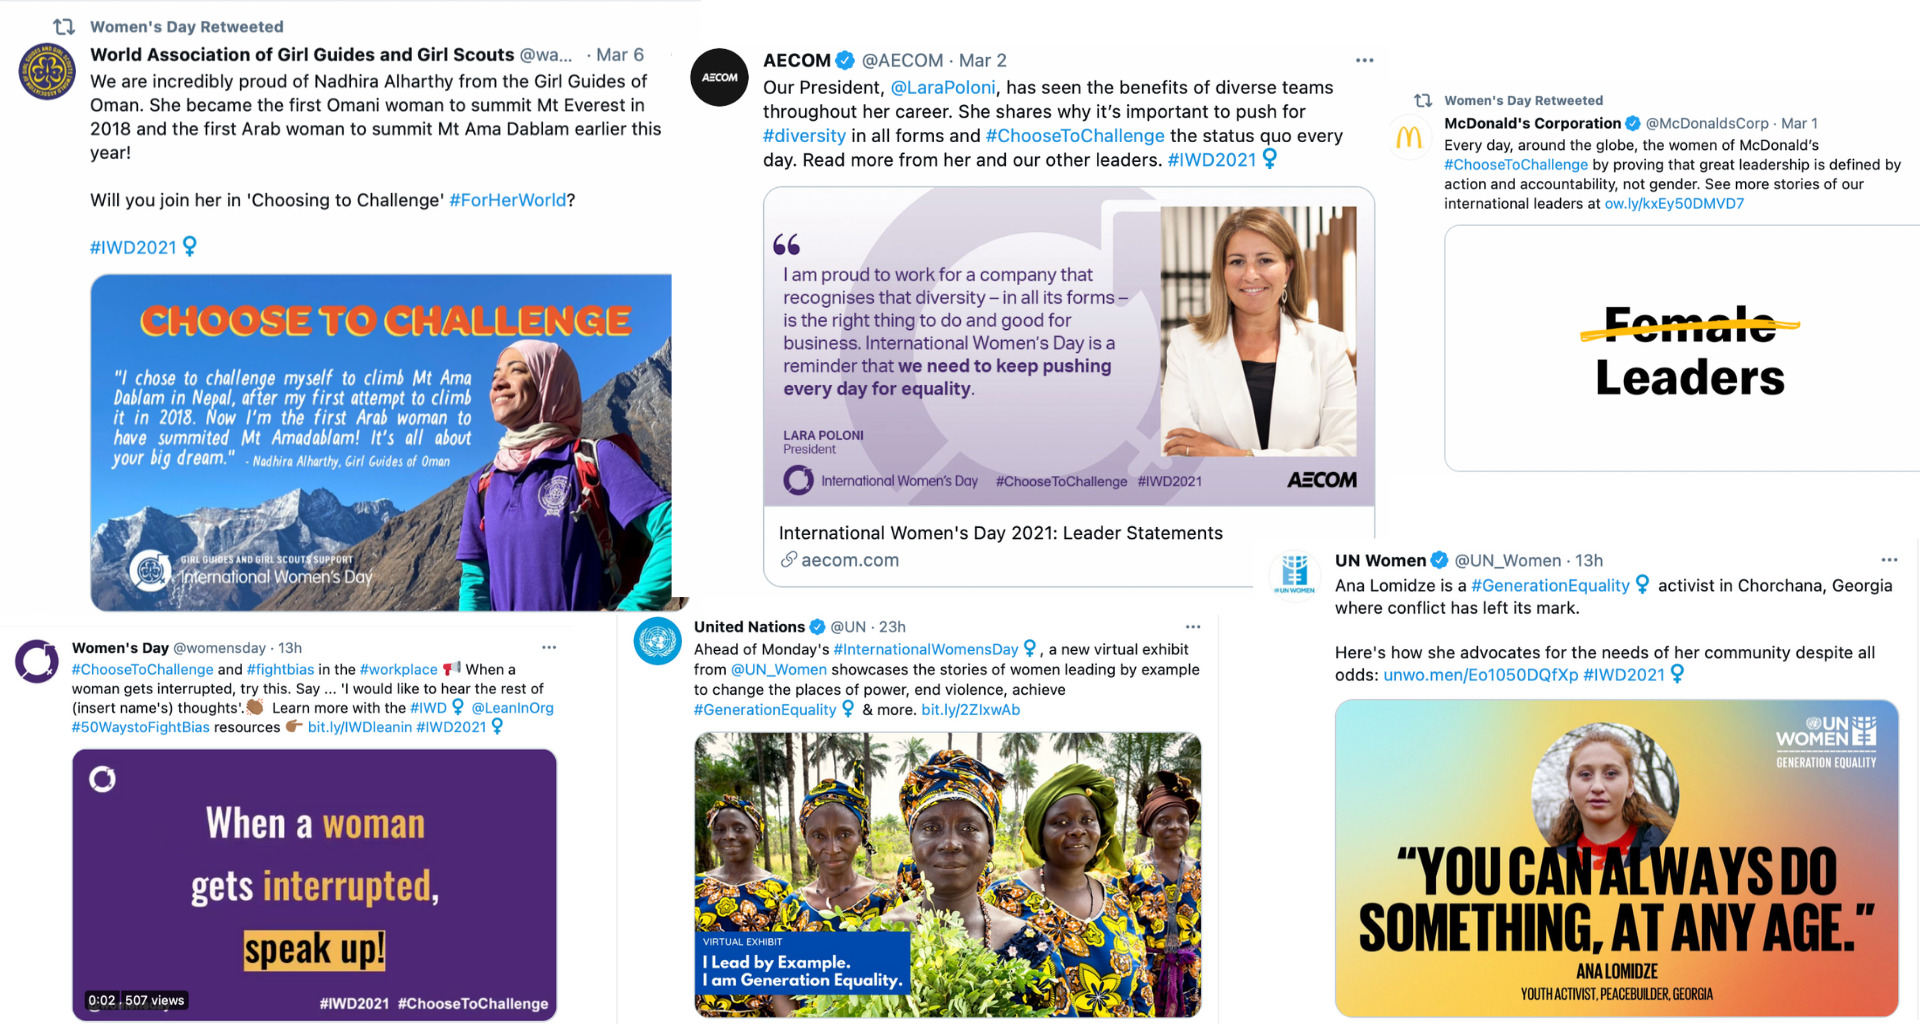 Images of some of the stories shared by IWD on social media